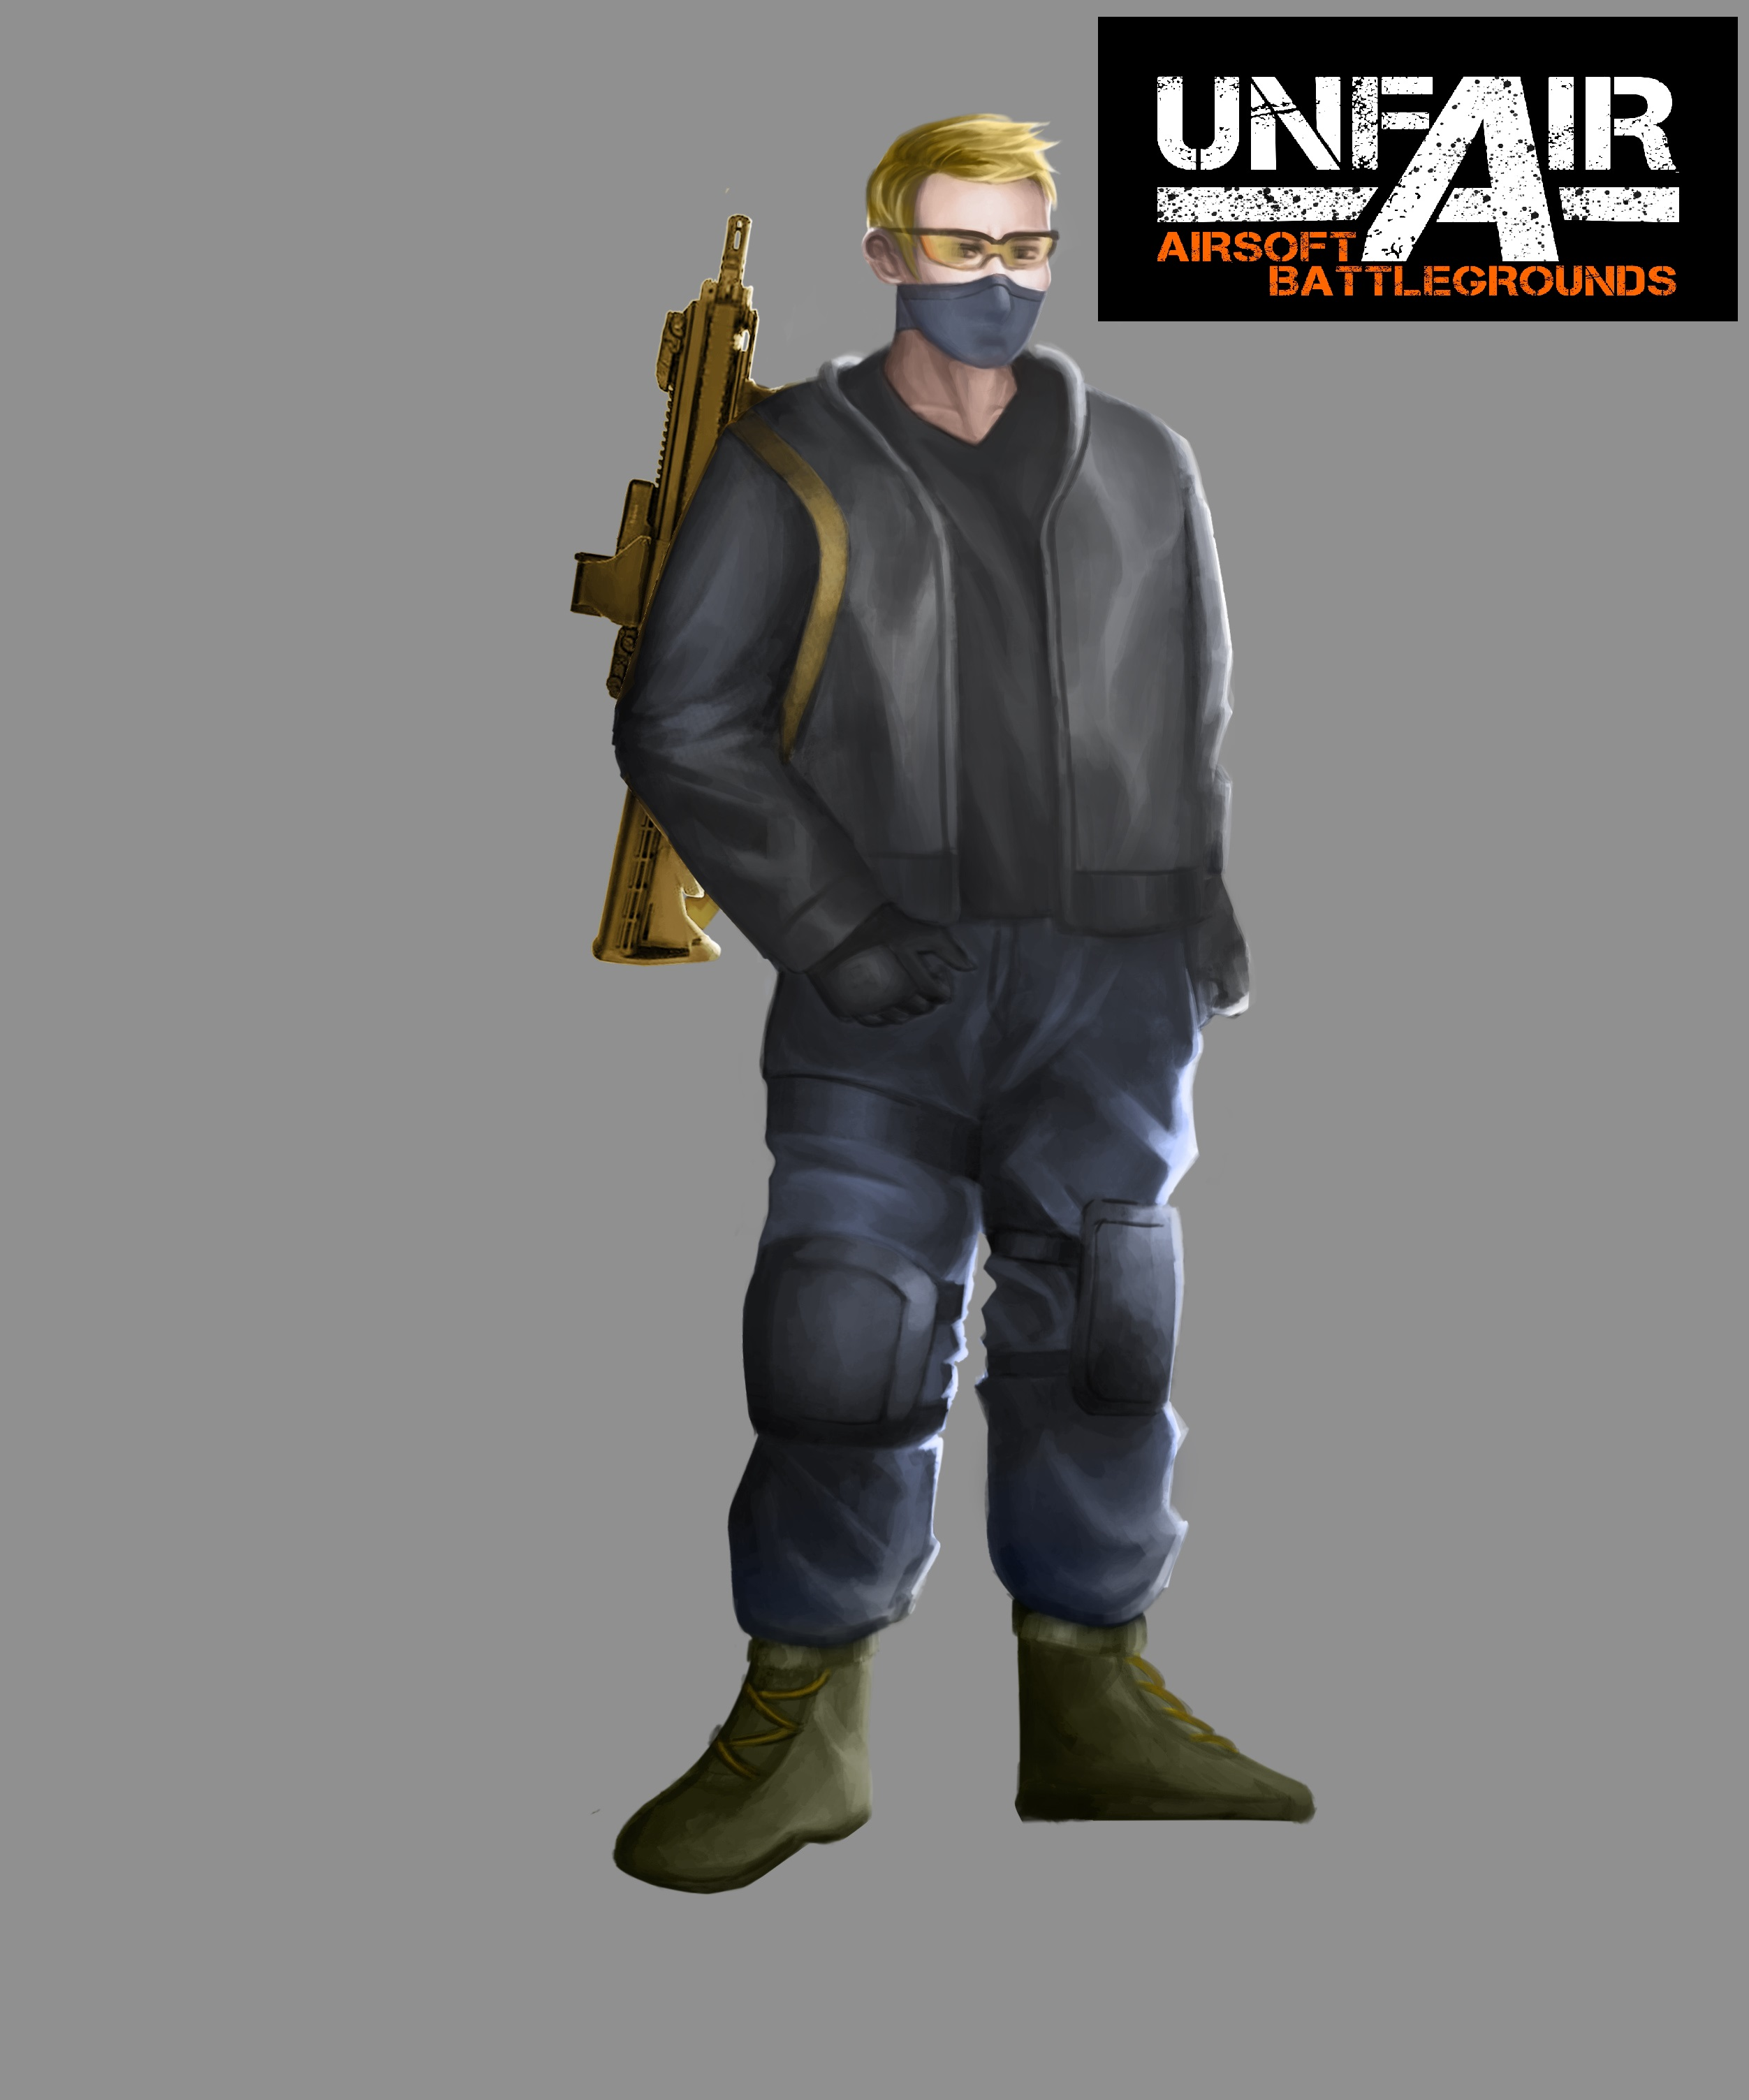 Basic Player Outfit Concept w lo